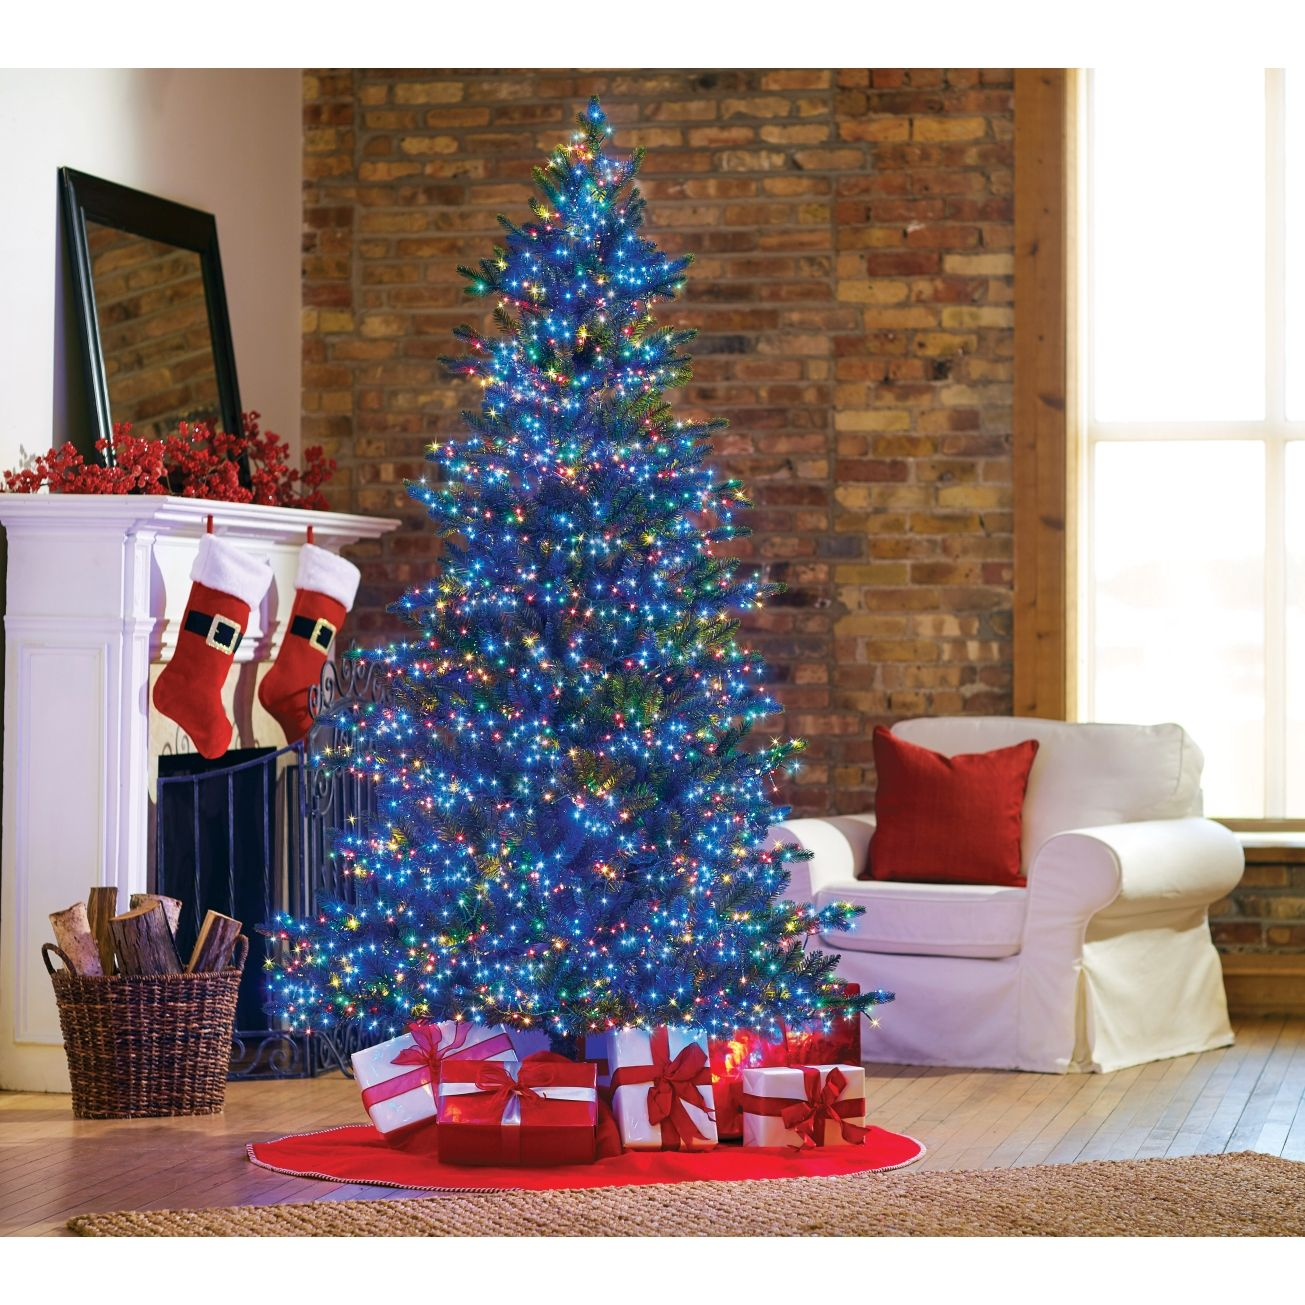 ace hardware wonderful time firs griswold overlit fir multicolored lights 7 ft prelit christmas tree 3080 lights christmas trees